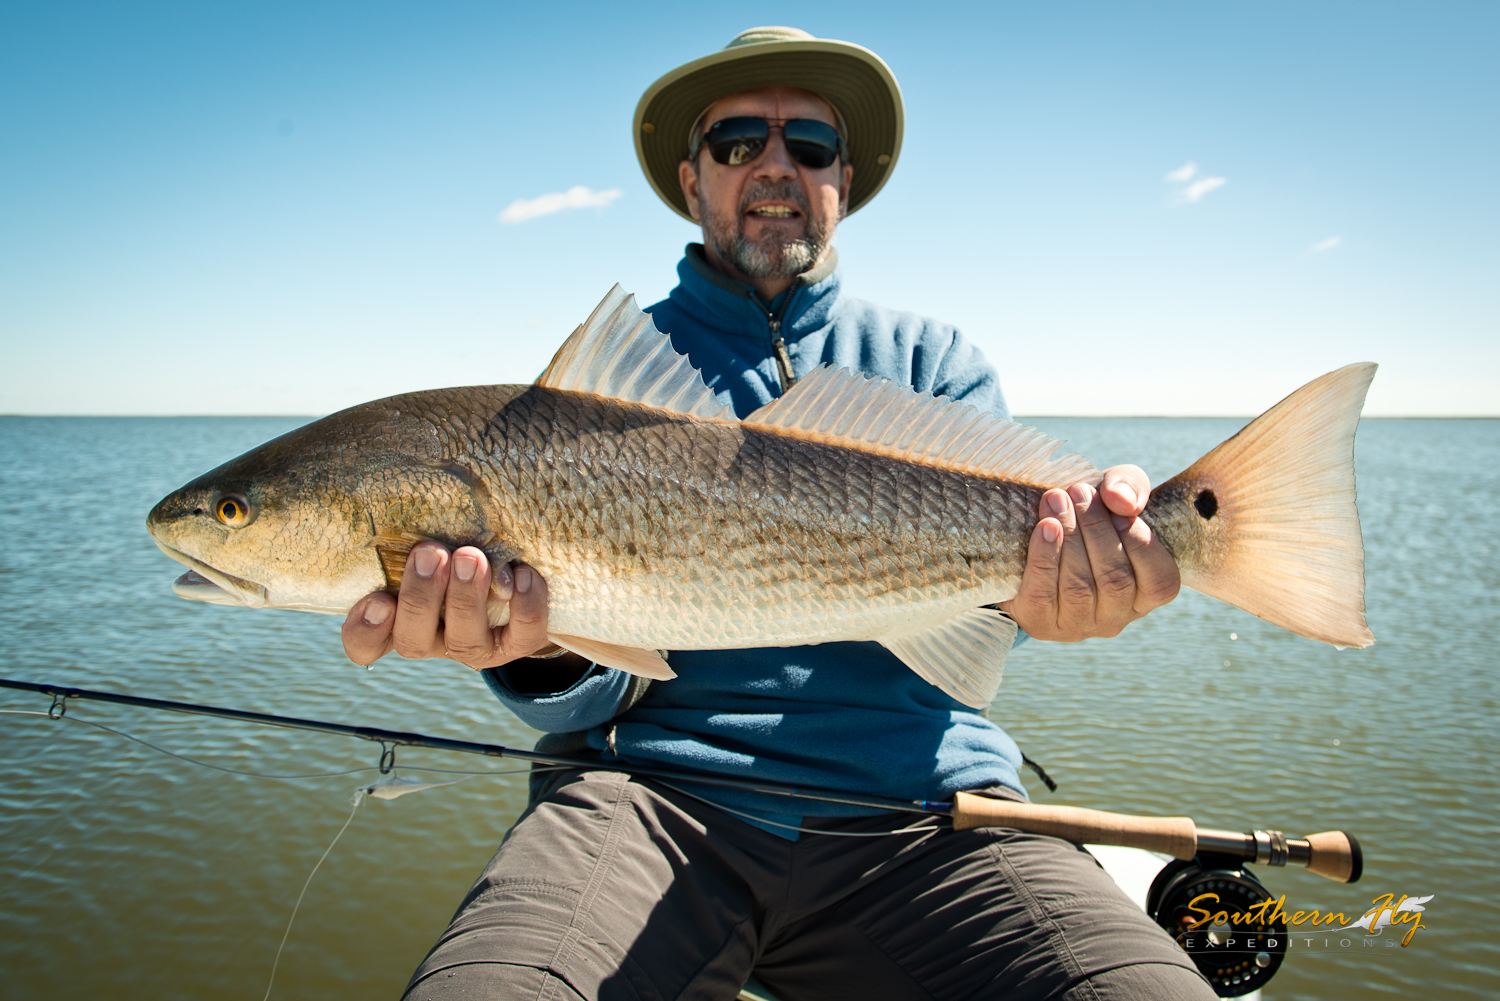 fishing on the fly with Southern Fly Expeditions and Captain Brandon Keck